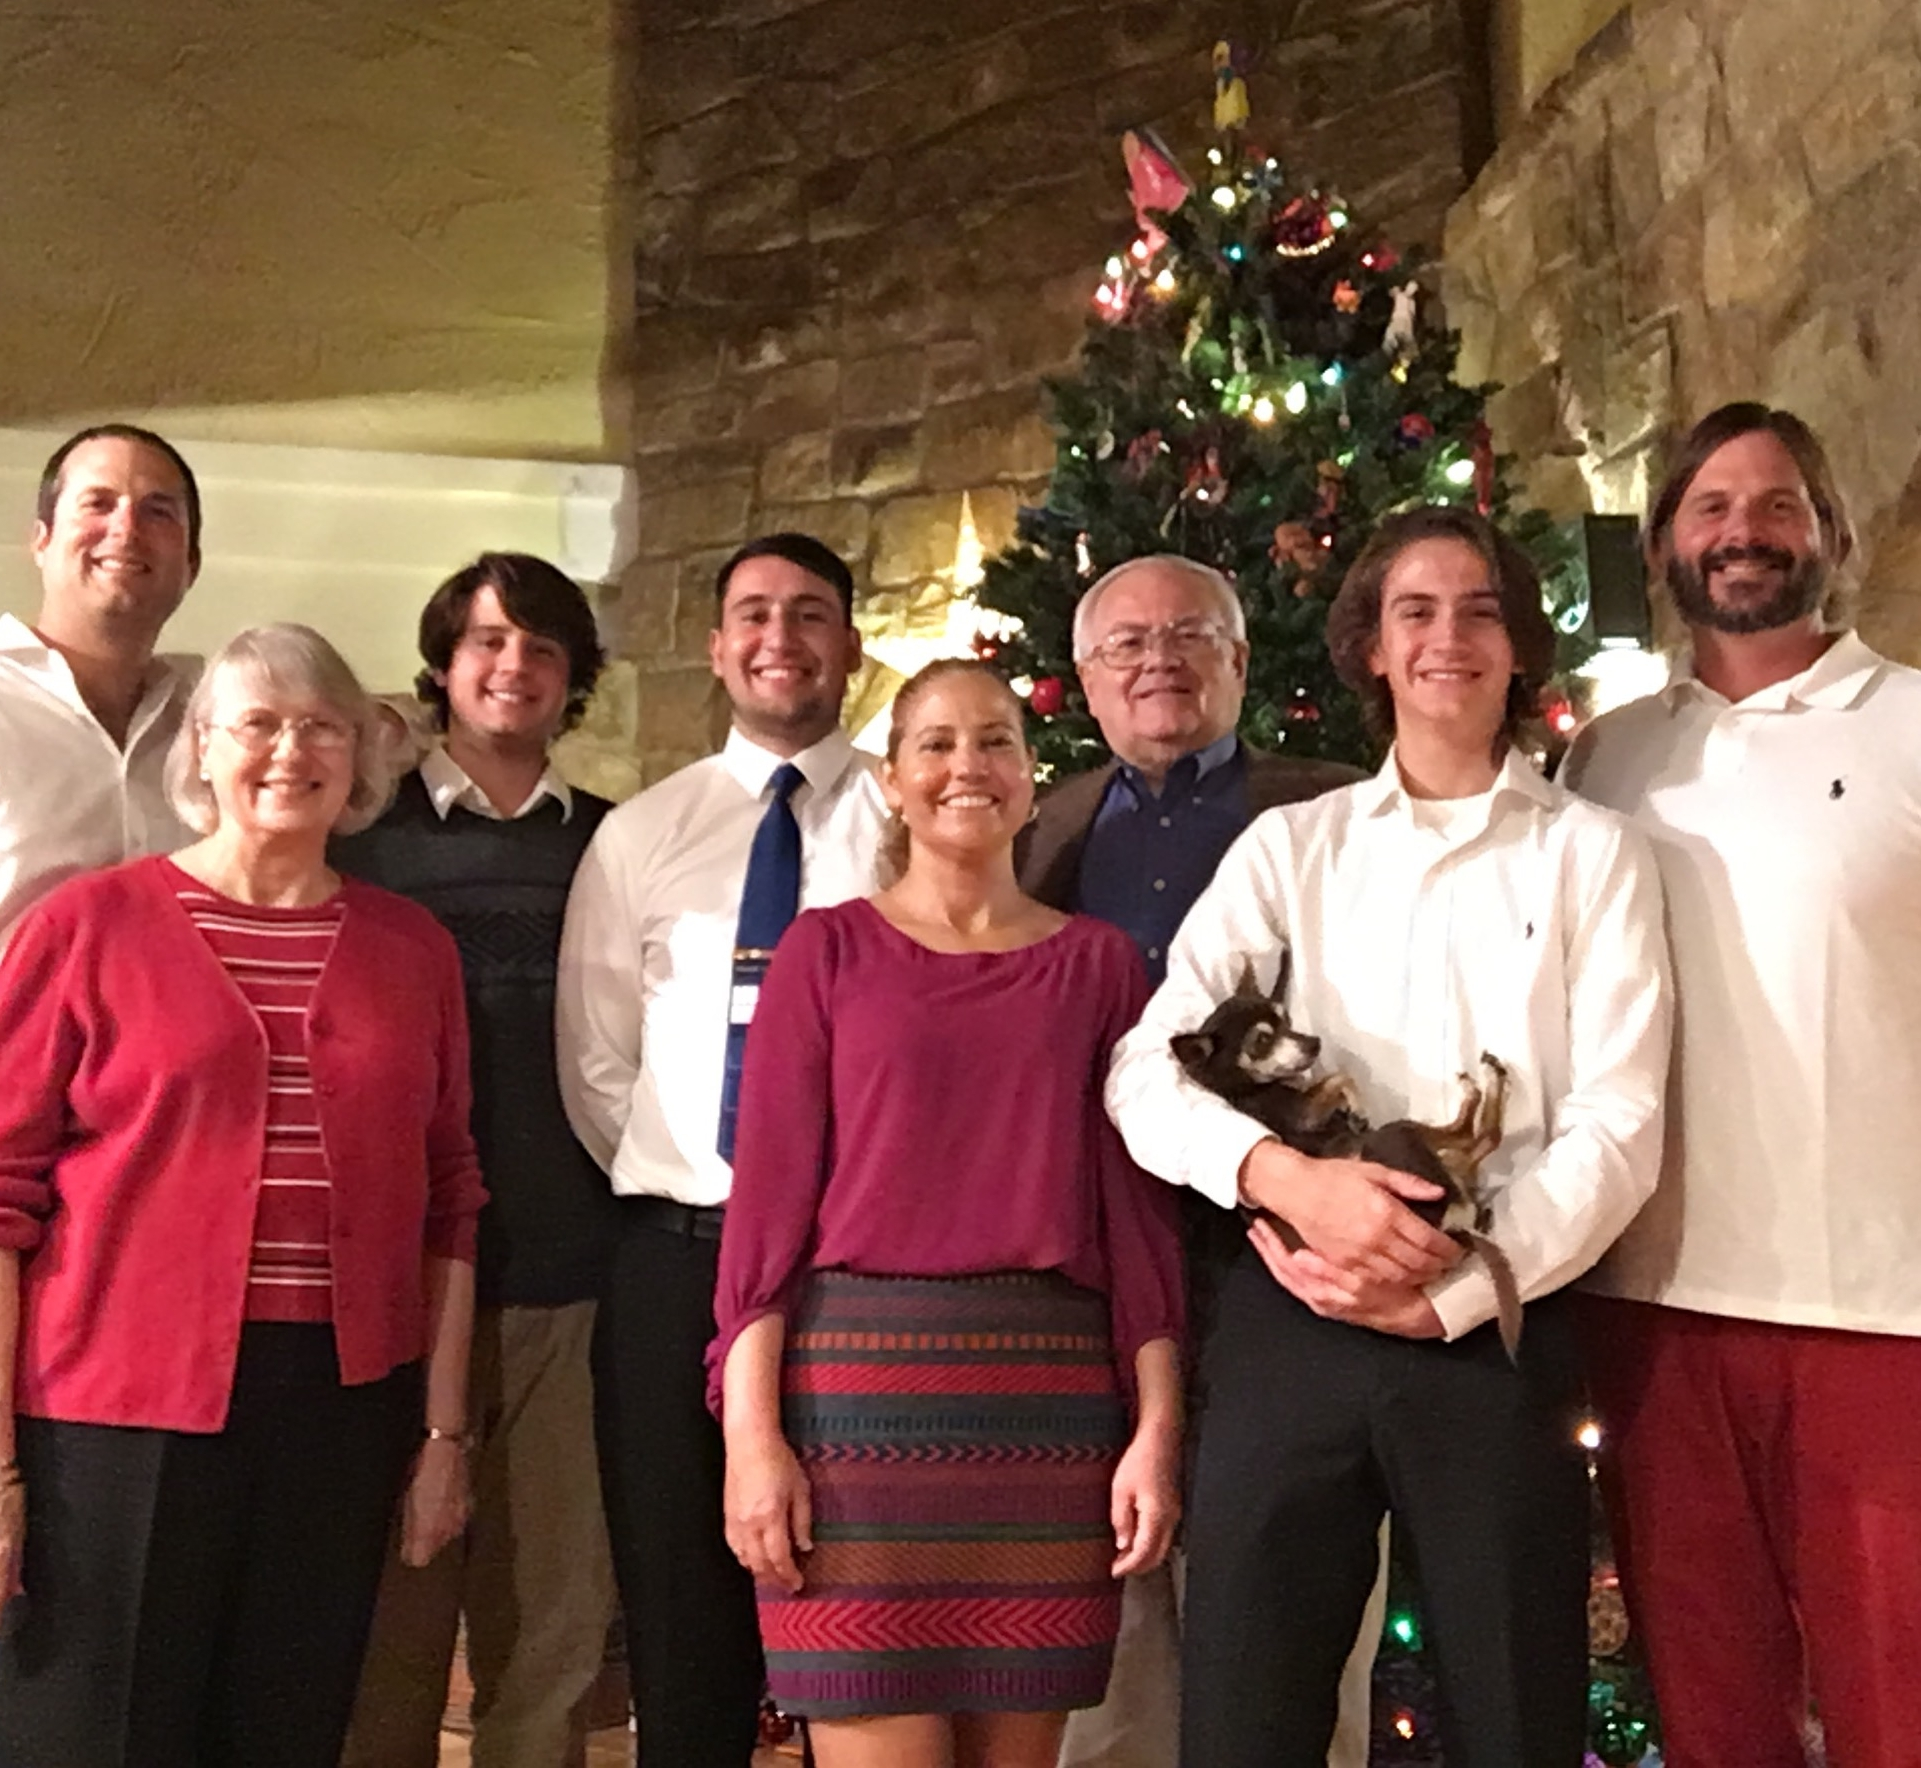 Bilger Family Christmas 2016: from the left, Michael, Dianne, Esiquiel, Christian, Elena, Boyd, Andreas, Billy Bob Jr. Grass(in hands), Andy,